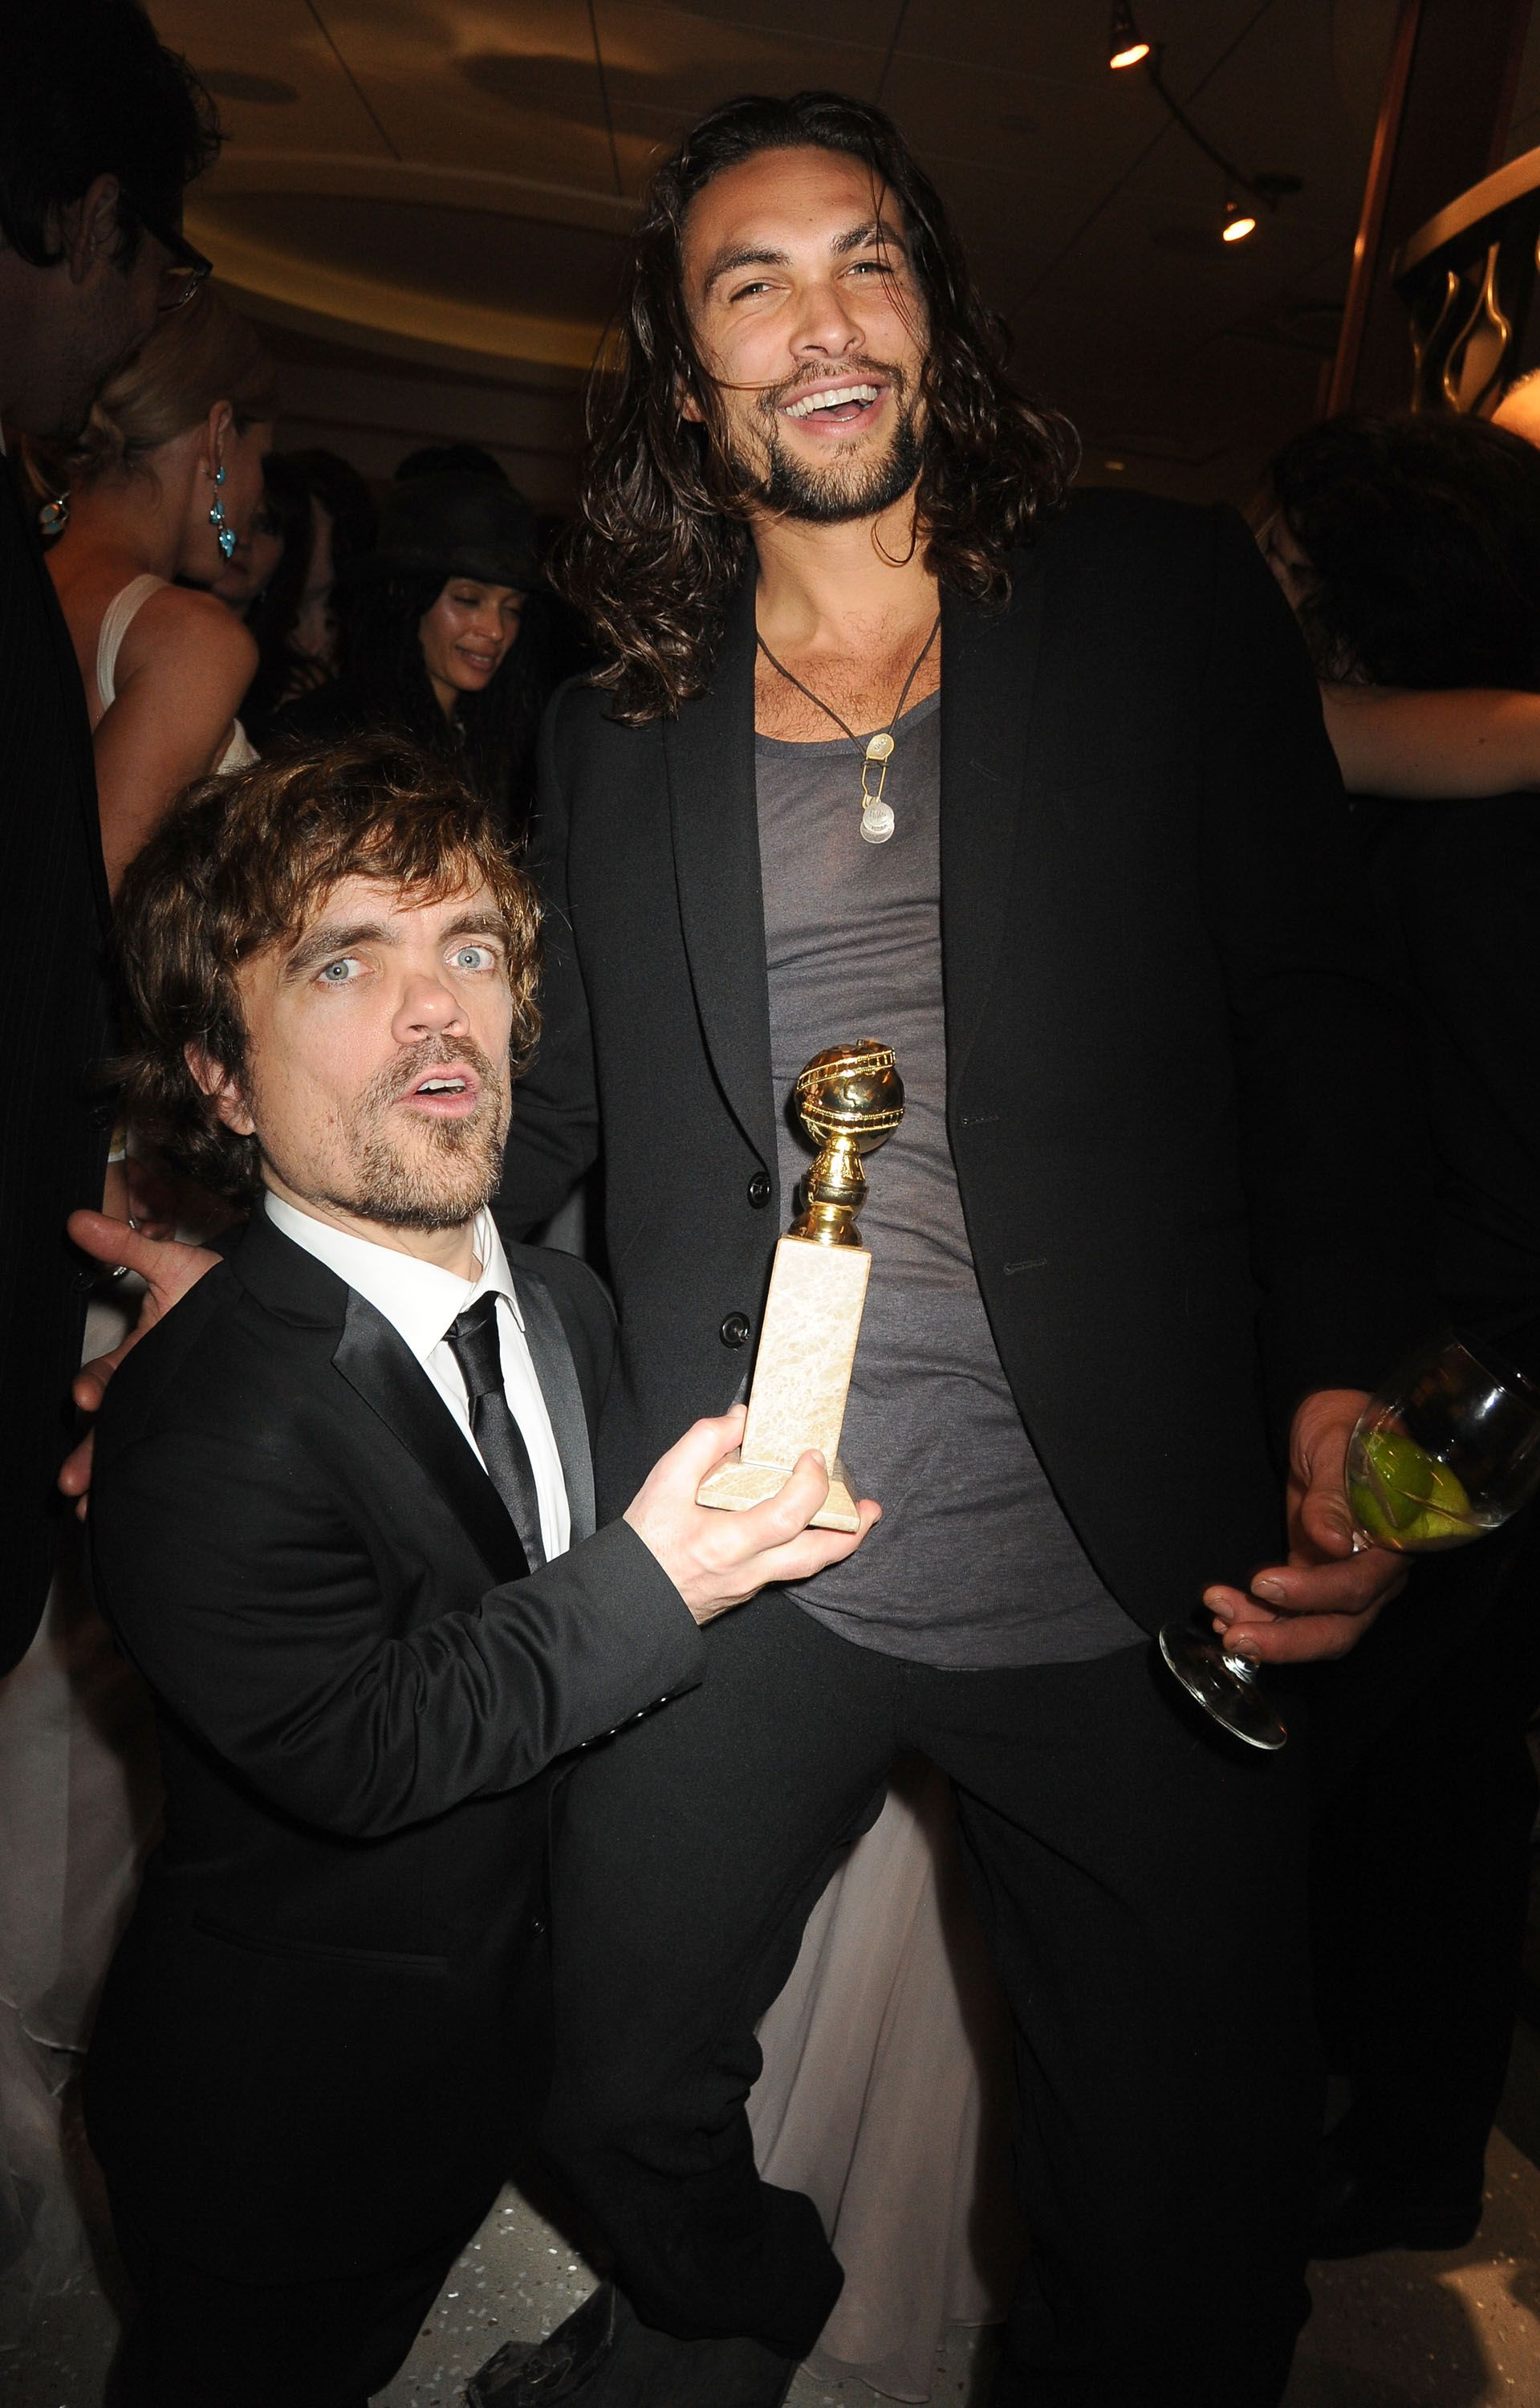 Peter Dinklage and Jason Momoa at the HBO's Official After Party for the 69th Annual Golden Globe Awards in 2012 in Beverly Hills, California | Source: Getty Images